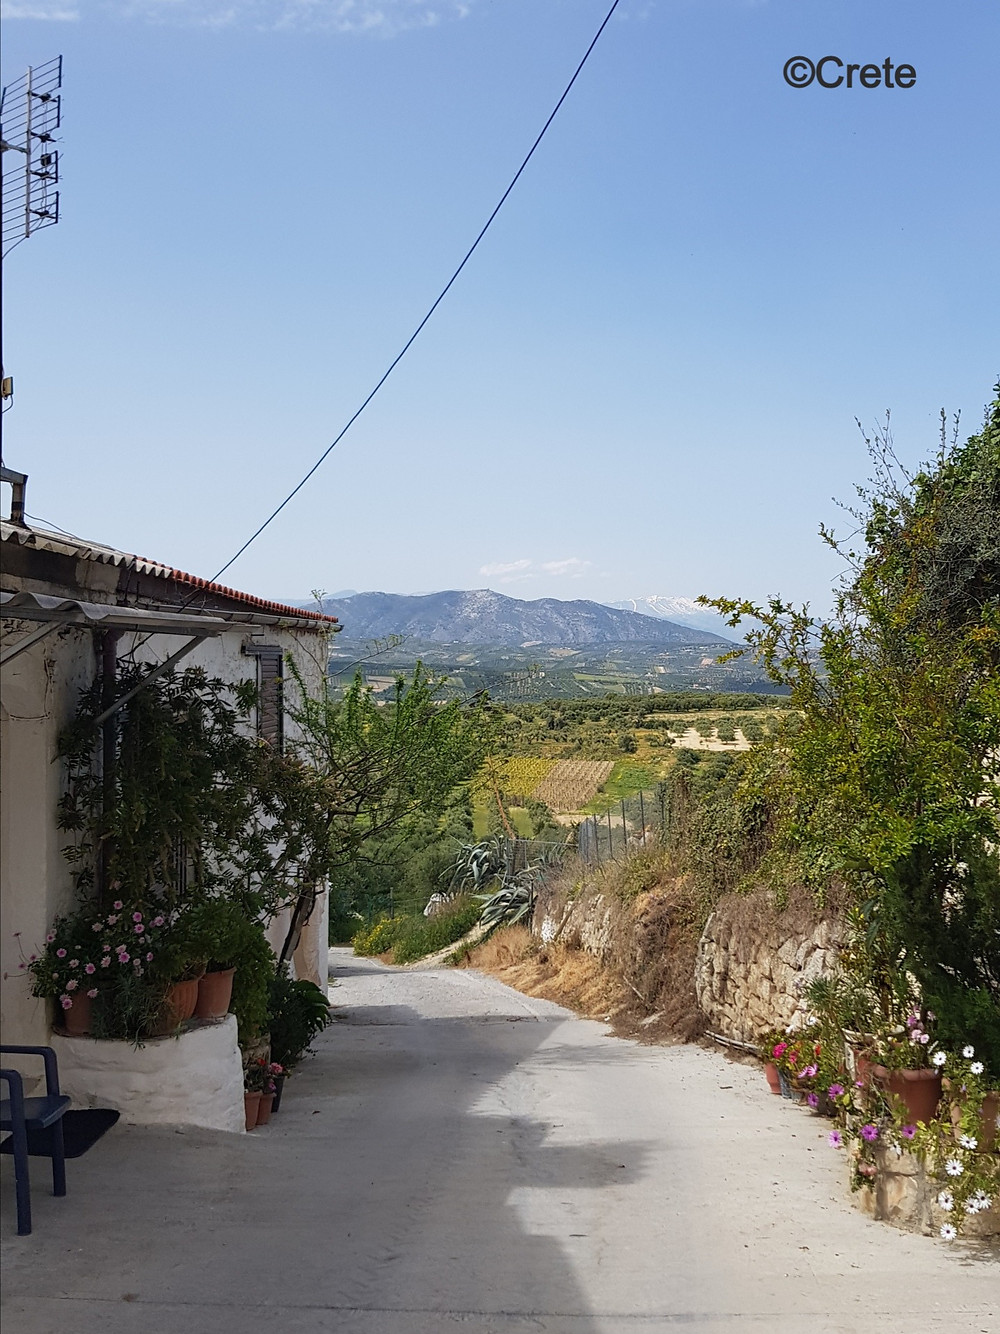 The village of the island of Crete, Greece offer a unique and welcoming culture where the people will never fail to intrigue and delight you with a legendary welcome.